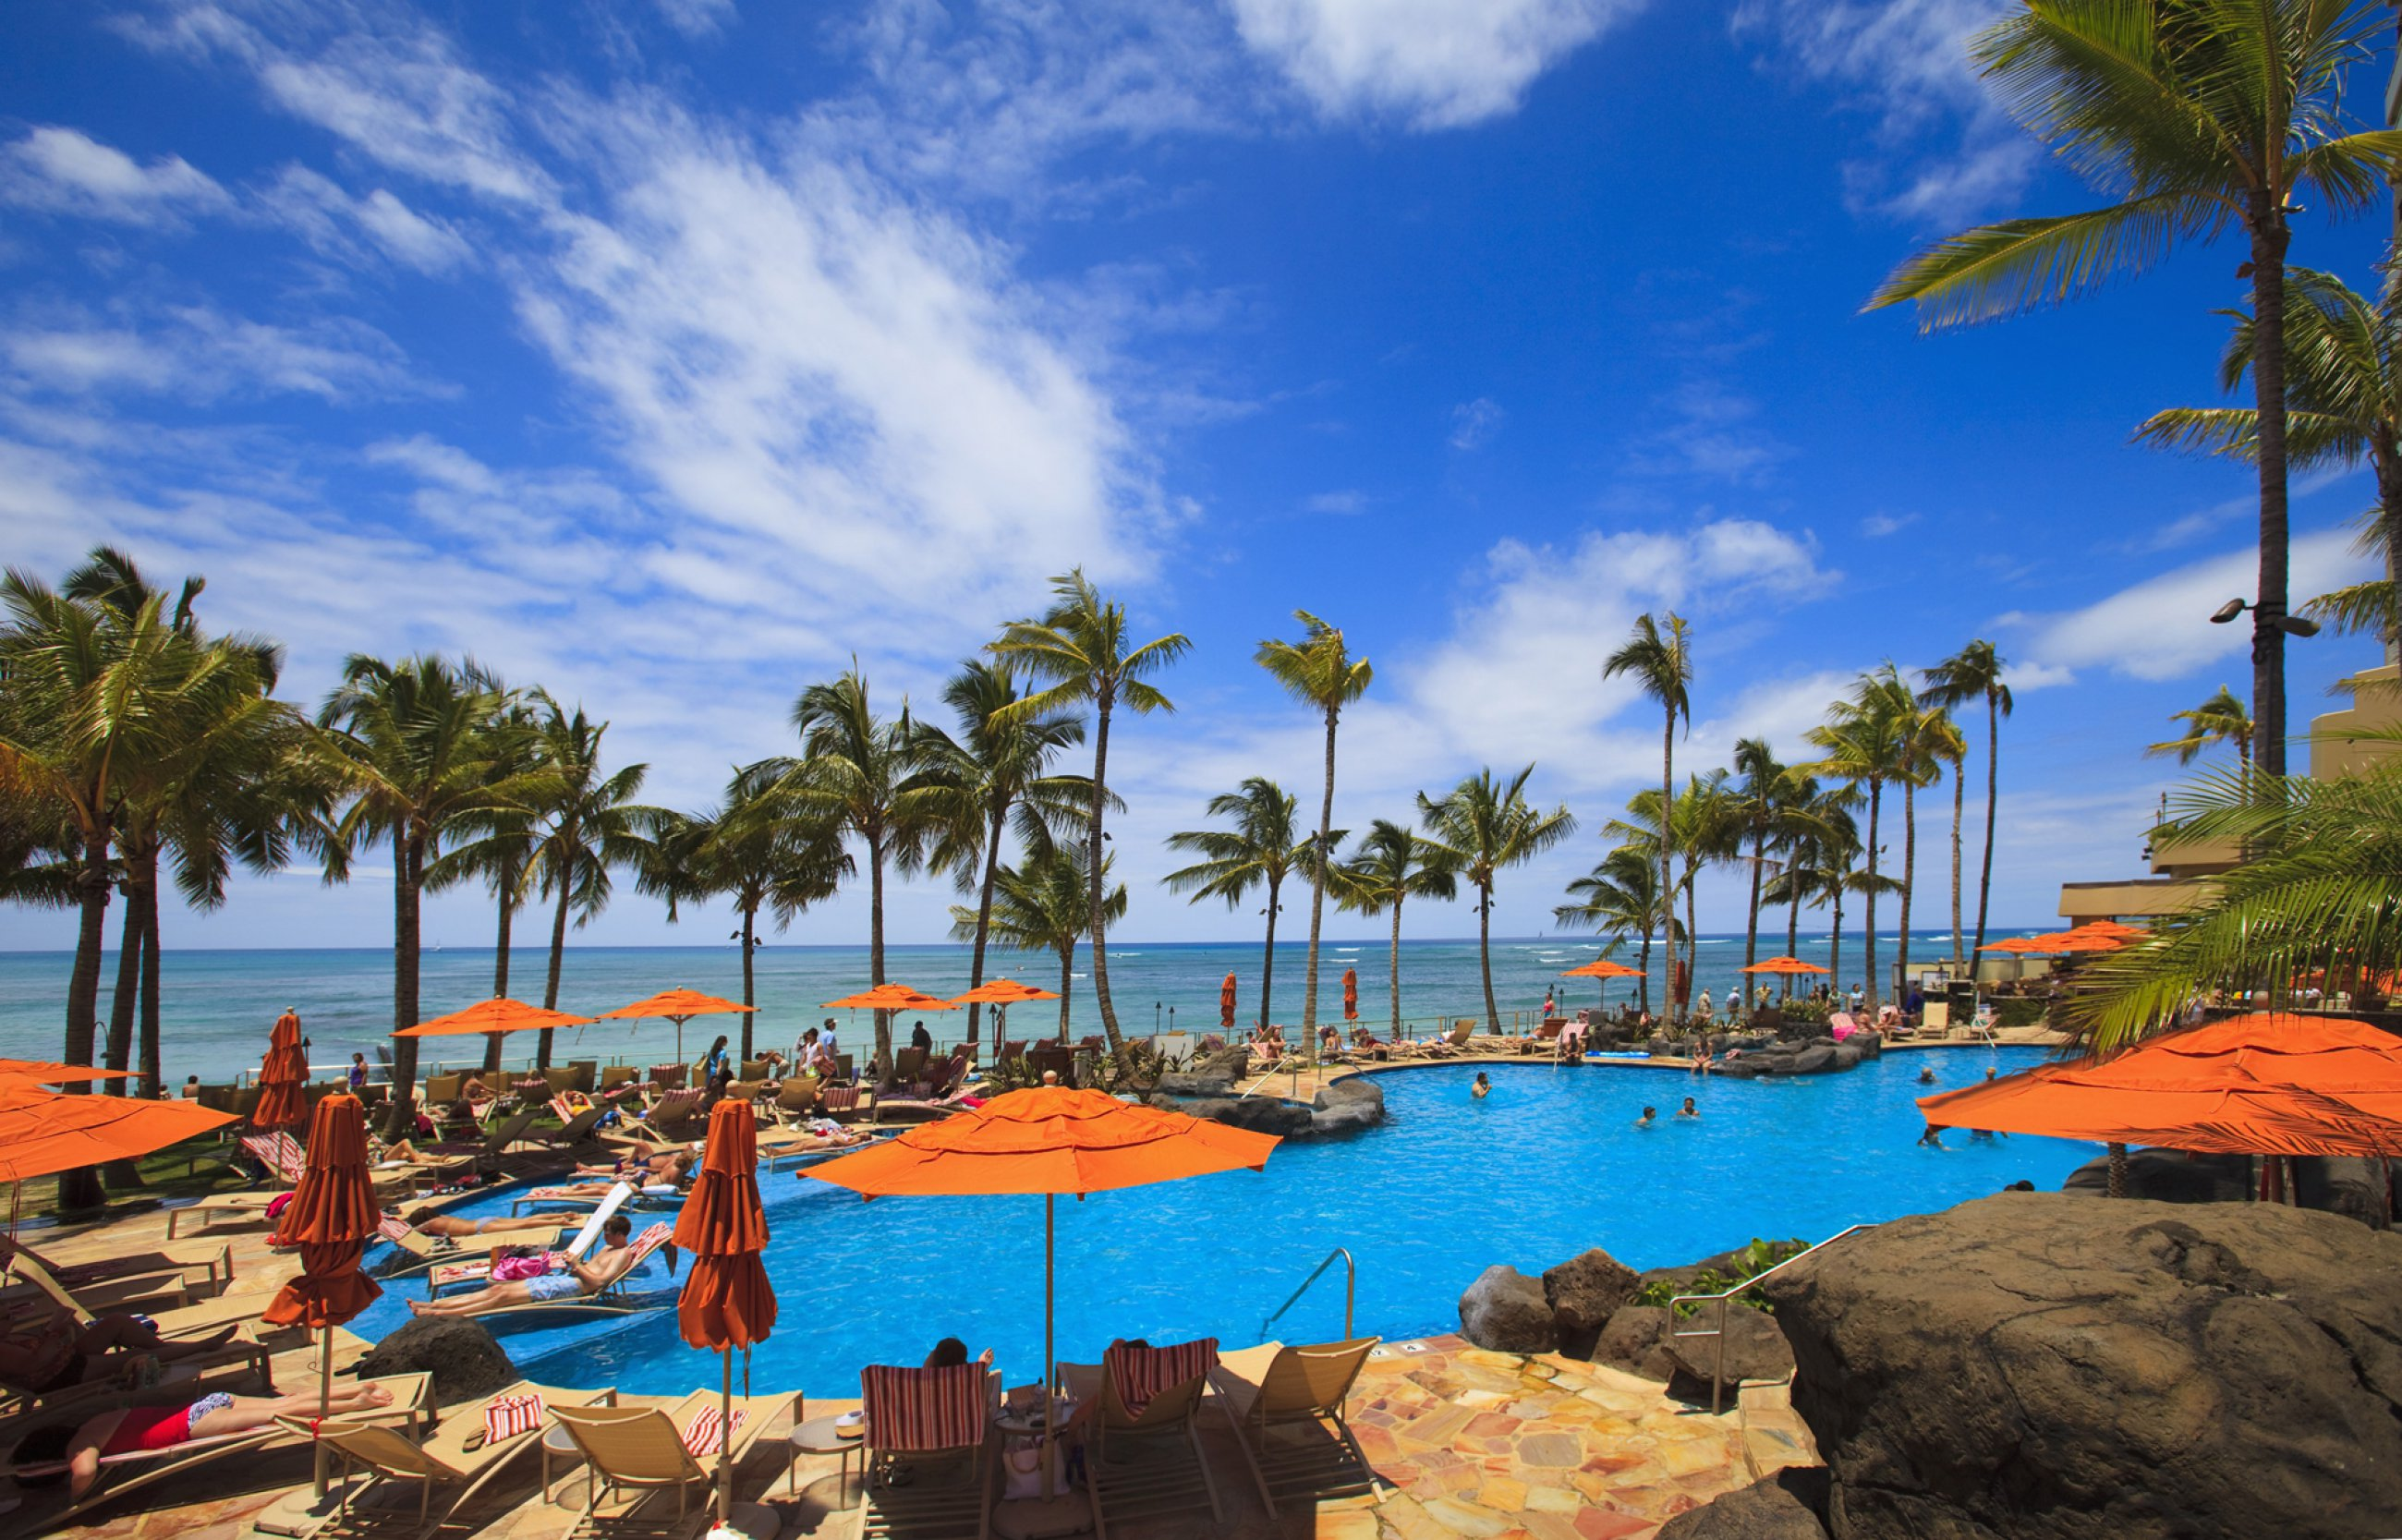 https://bubo.sk/uploads/galleries/4998/oahu-havaj-the-swimming-pool-at-the-sheraton-waikiki-hotel-sits-at-waters-edge-by-the-blue-pacific-ocean-on-waikiki-beach-hawaii.jpg